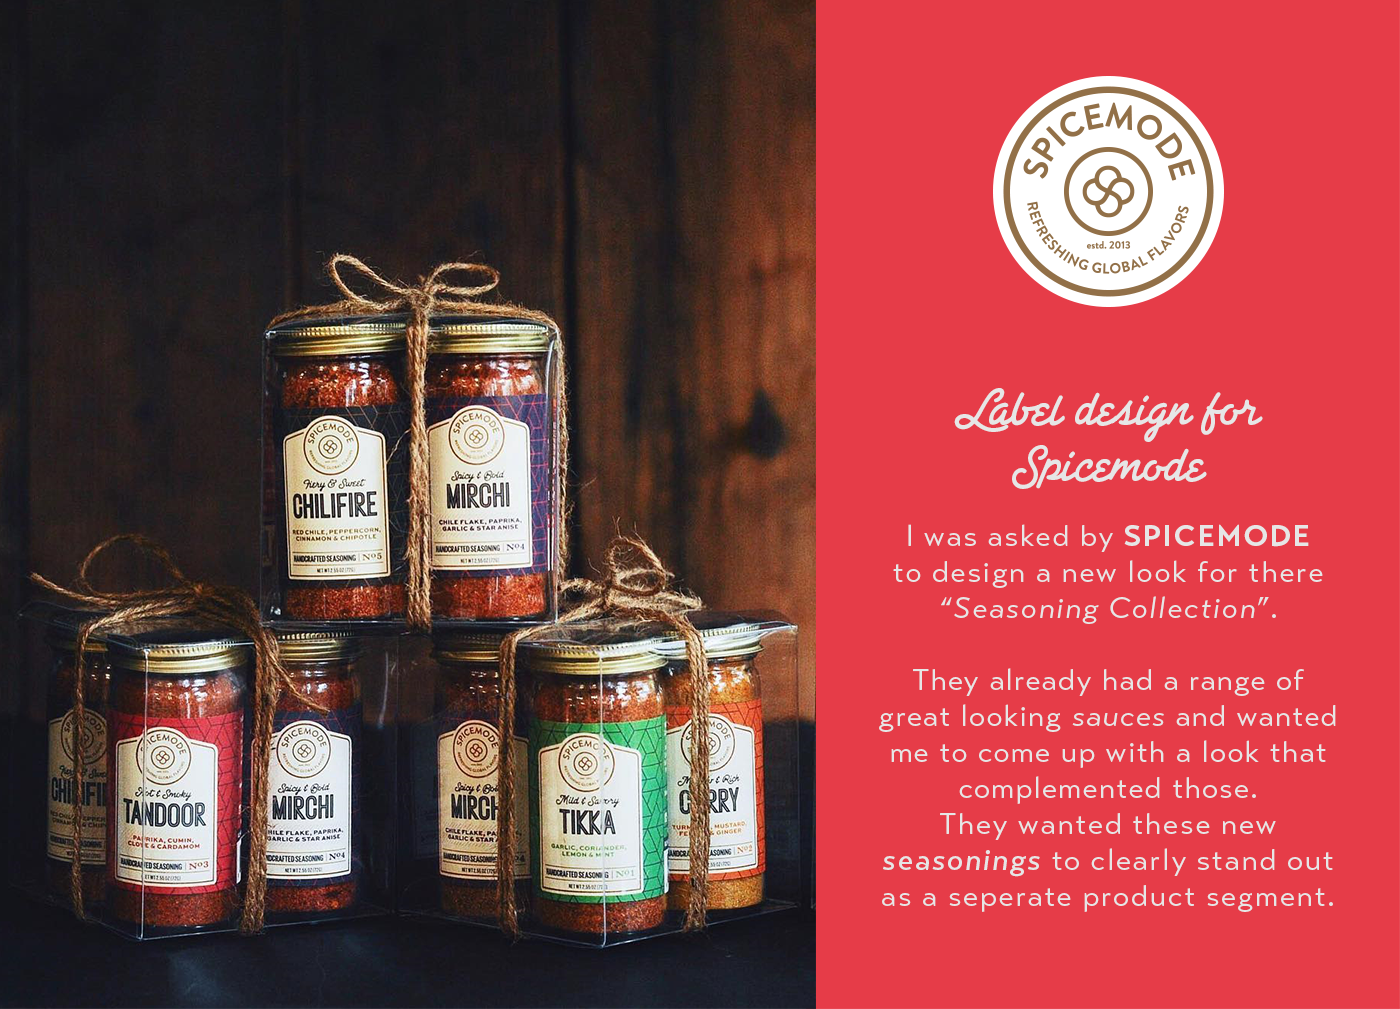 Spicemode - The Seasoning Collection - Info